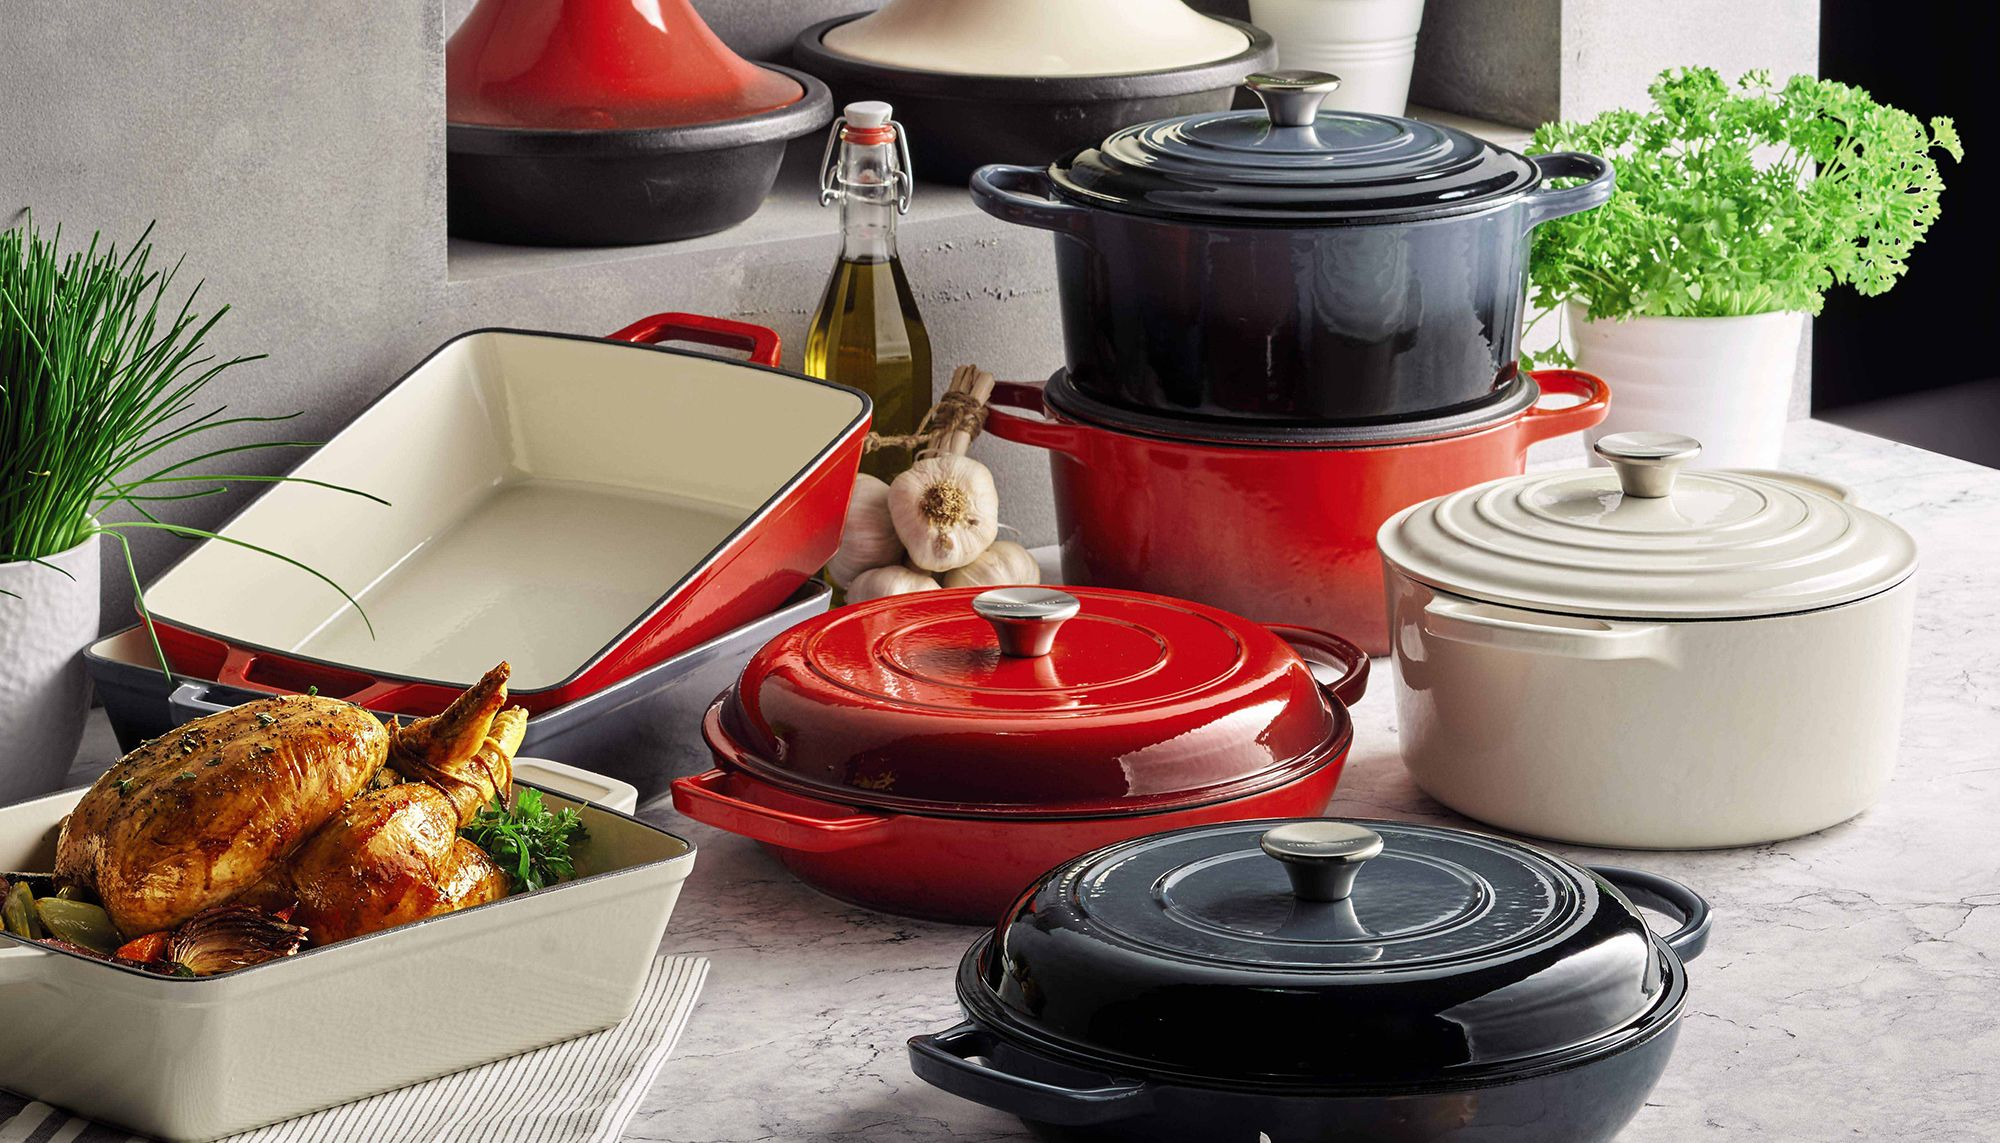 Aldi Saucepans Aldi Launches Cast Iron Cookware Range To Rival High End Brand Le